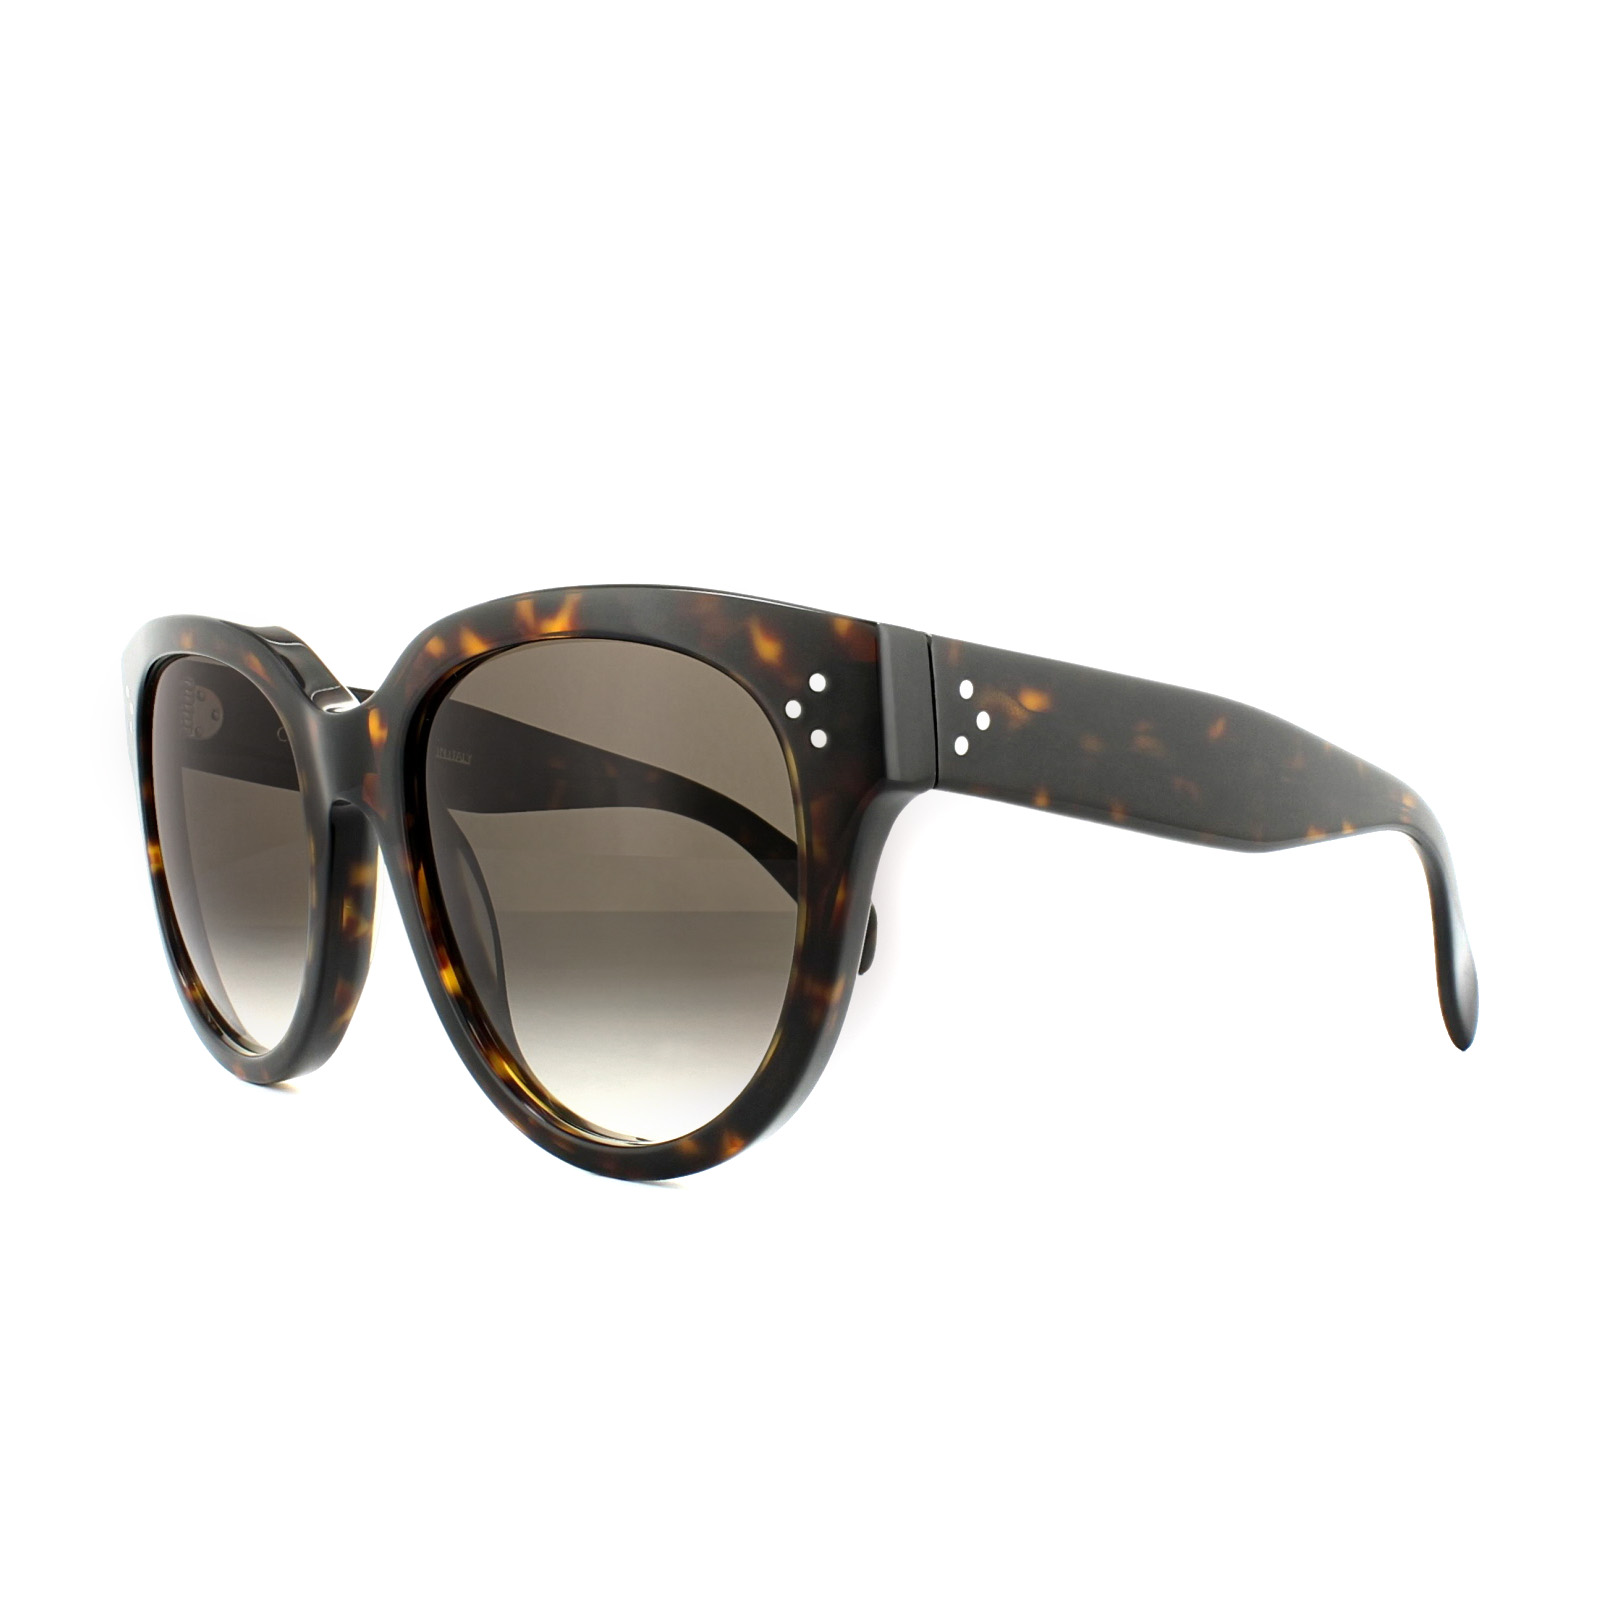 bfd441c31e24 Cheap Celine 41755 S Audrey Sunglasses - Discounted Sunglasses